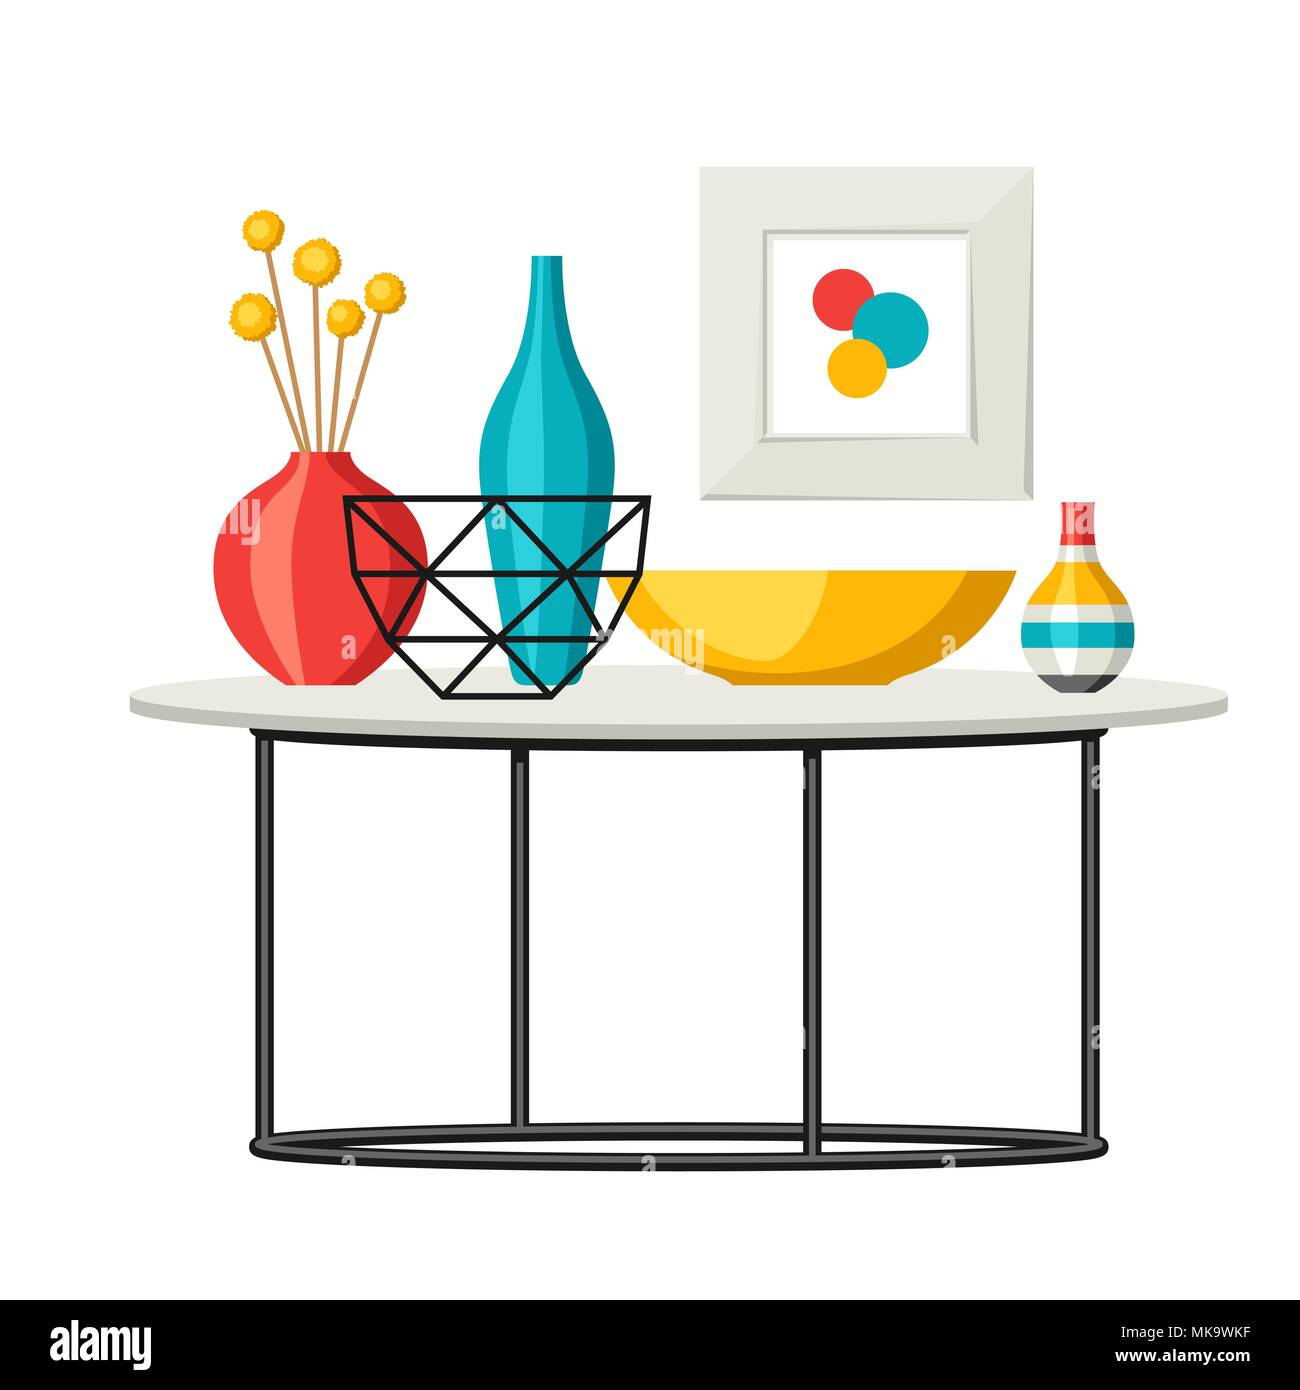 Interior Home Decor Table With Vases And Picture Stock Vector Image Art Alamy